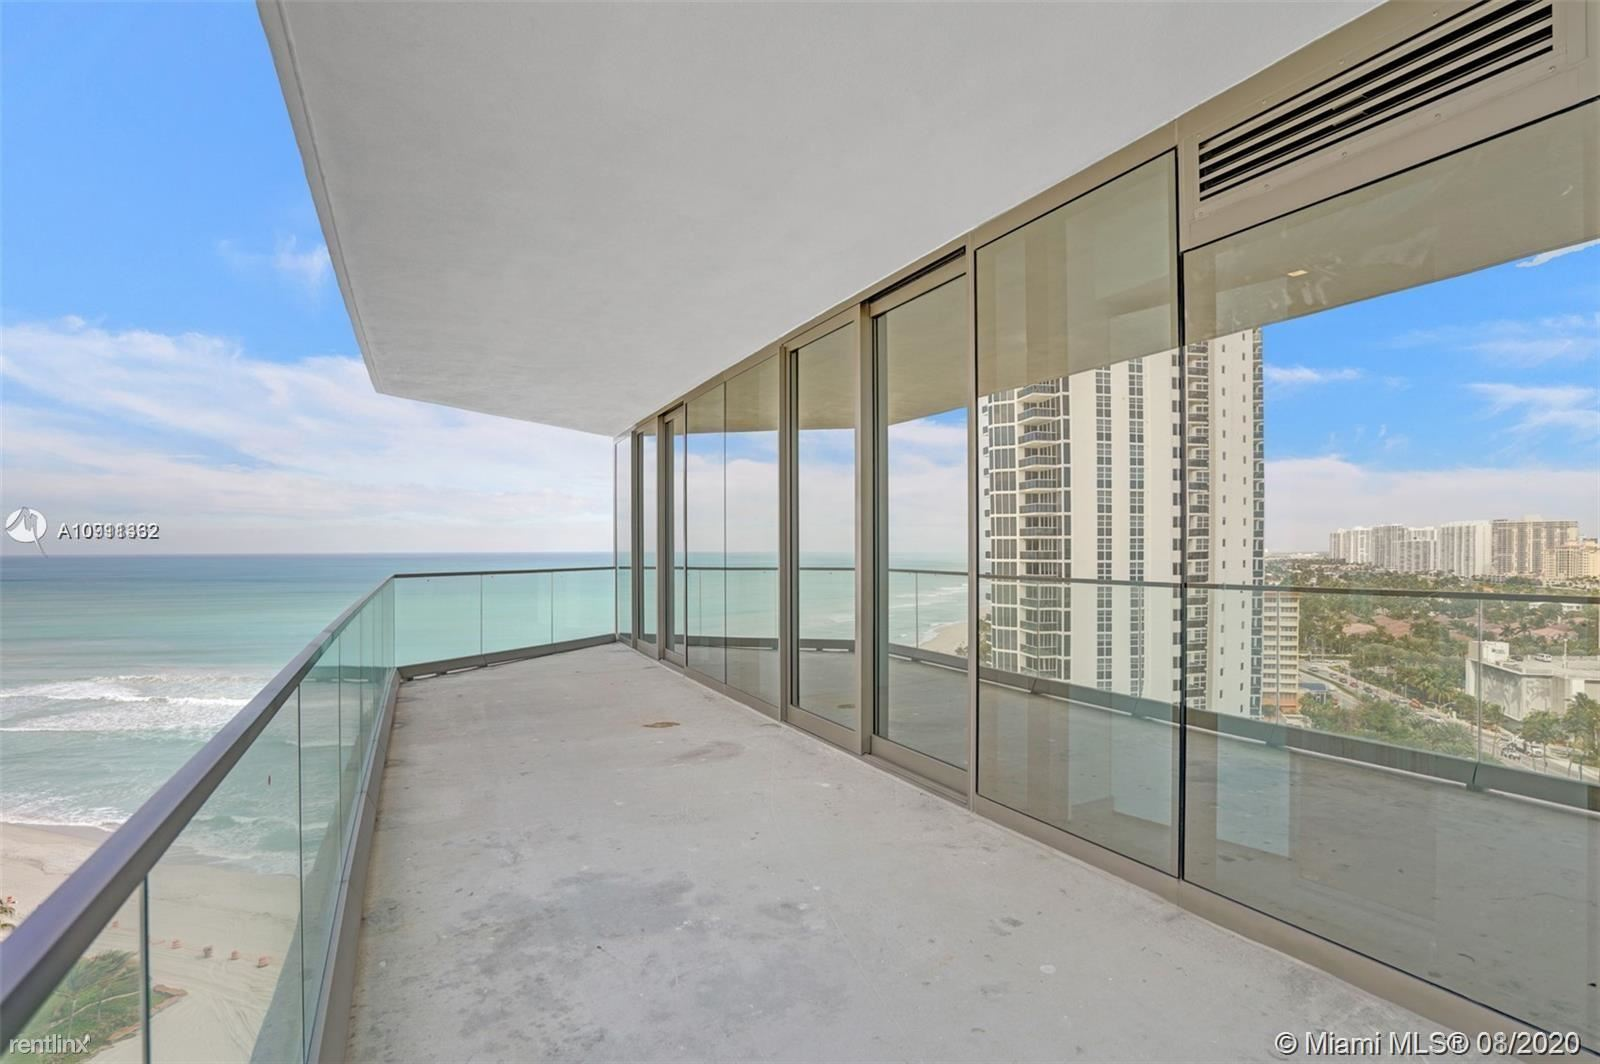 18975 Collins Ave Unit 1000, Sunny Isles Beach, FL - $18,000